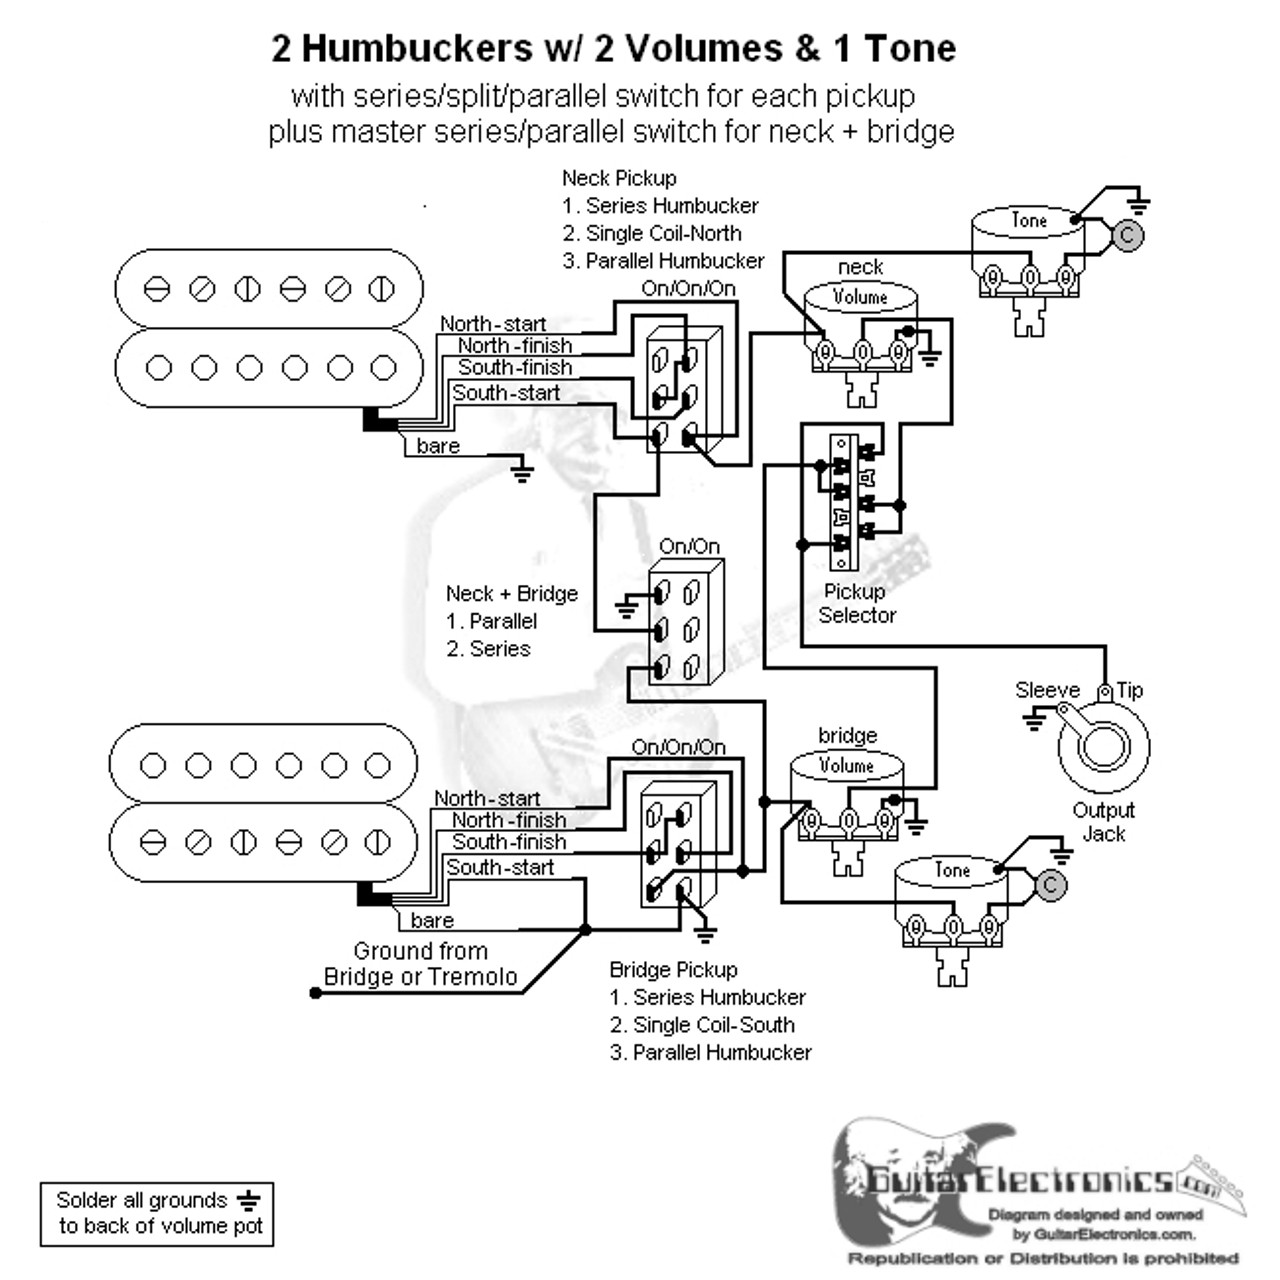 2 HBs/3-Way Lever/2 Vol/2 Tones/Series-Split-Parallel & Master Series-Parallel